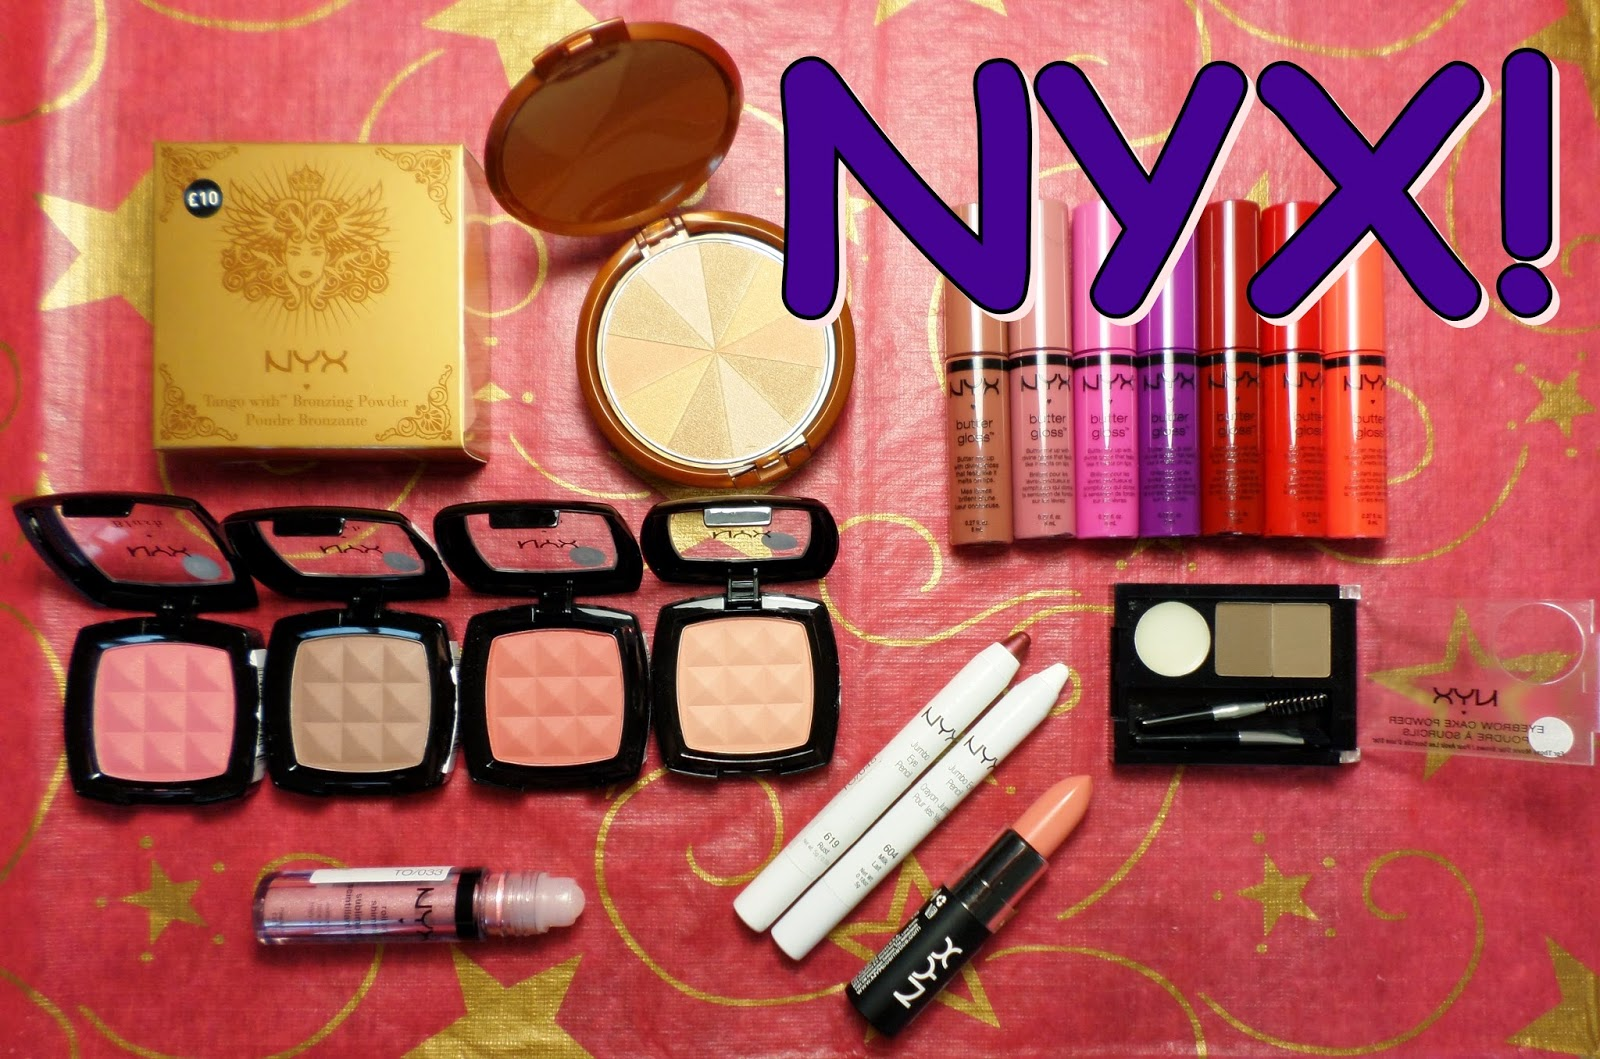 Boxing Day Sale Haul 2014 Next NYX Makeup MissBeautySaver